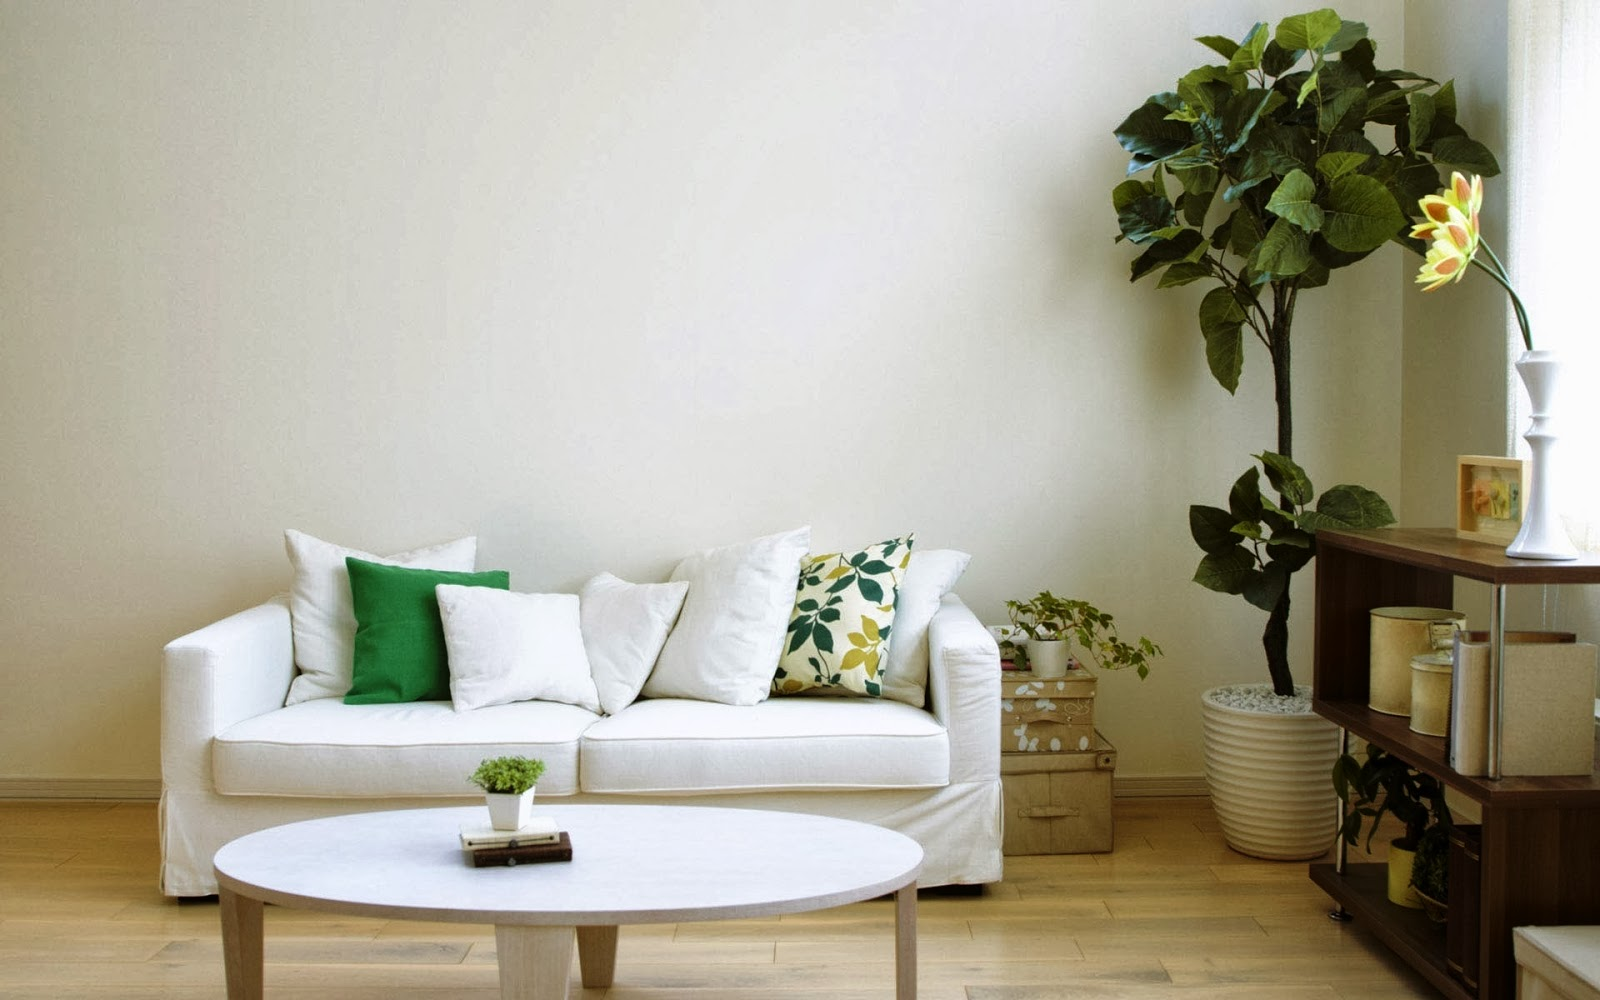 Decorative Plant With White Pot As The Corner Decoration A White Sofa With  White Pillows And